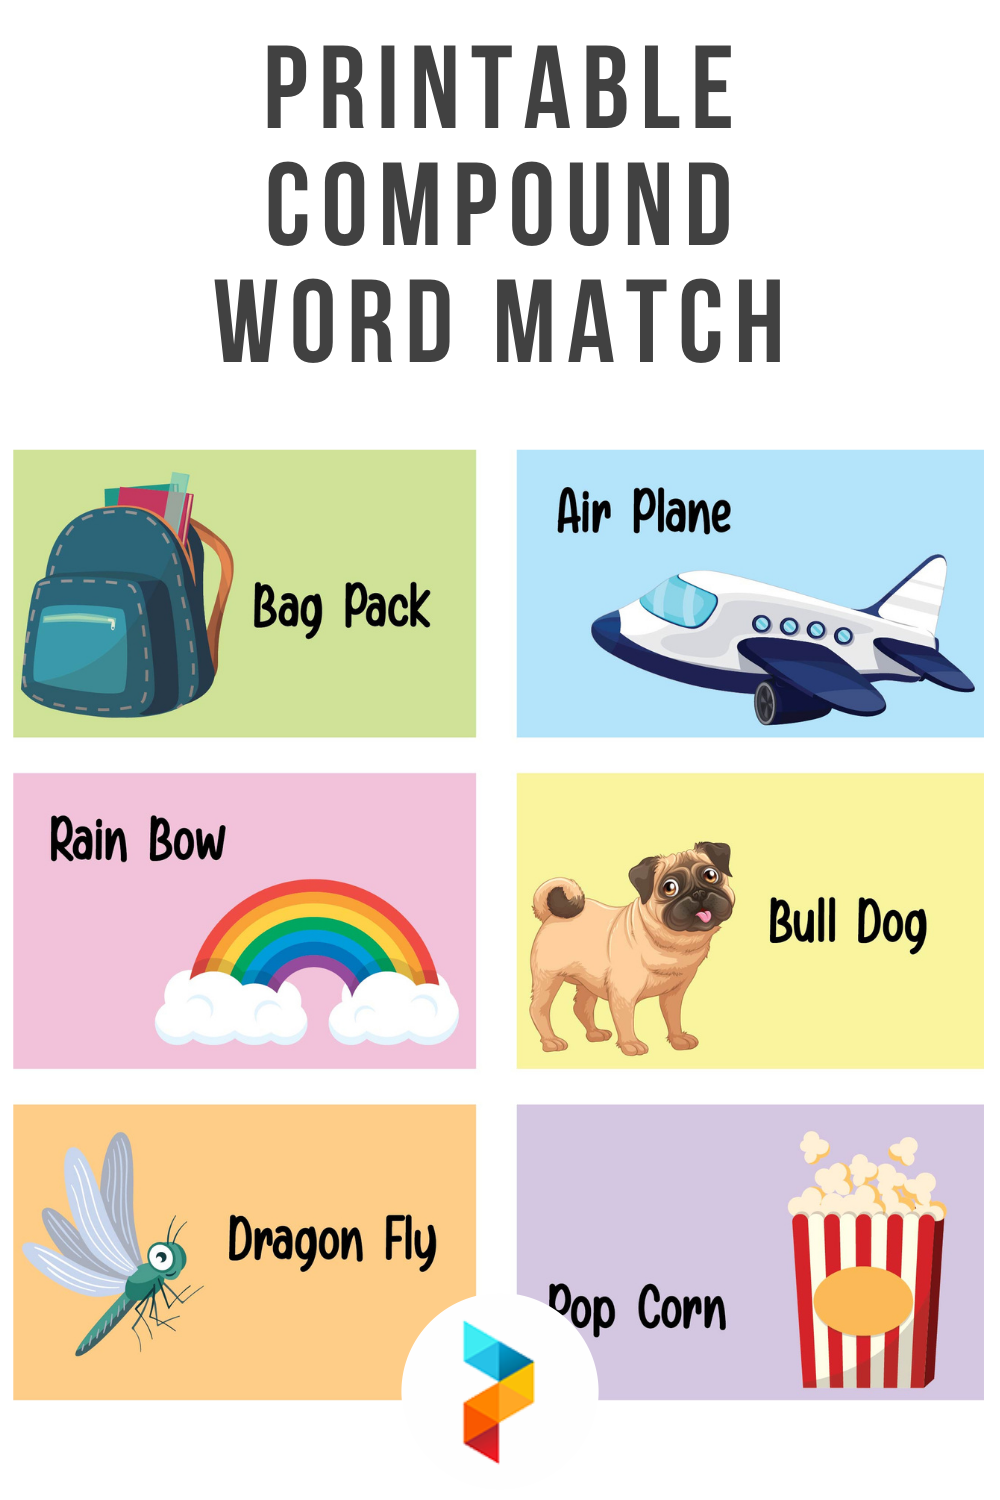 Printable Compound Word Match